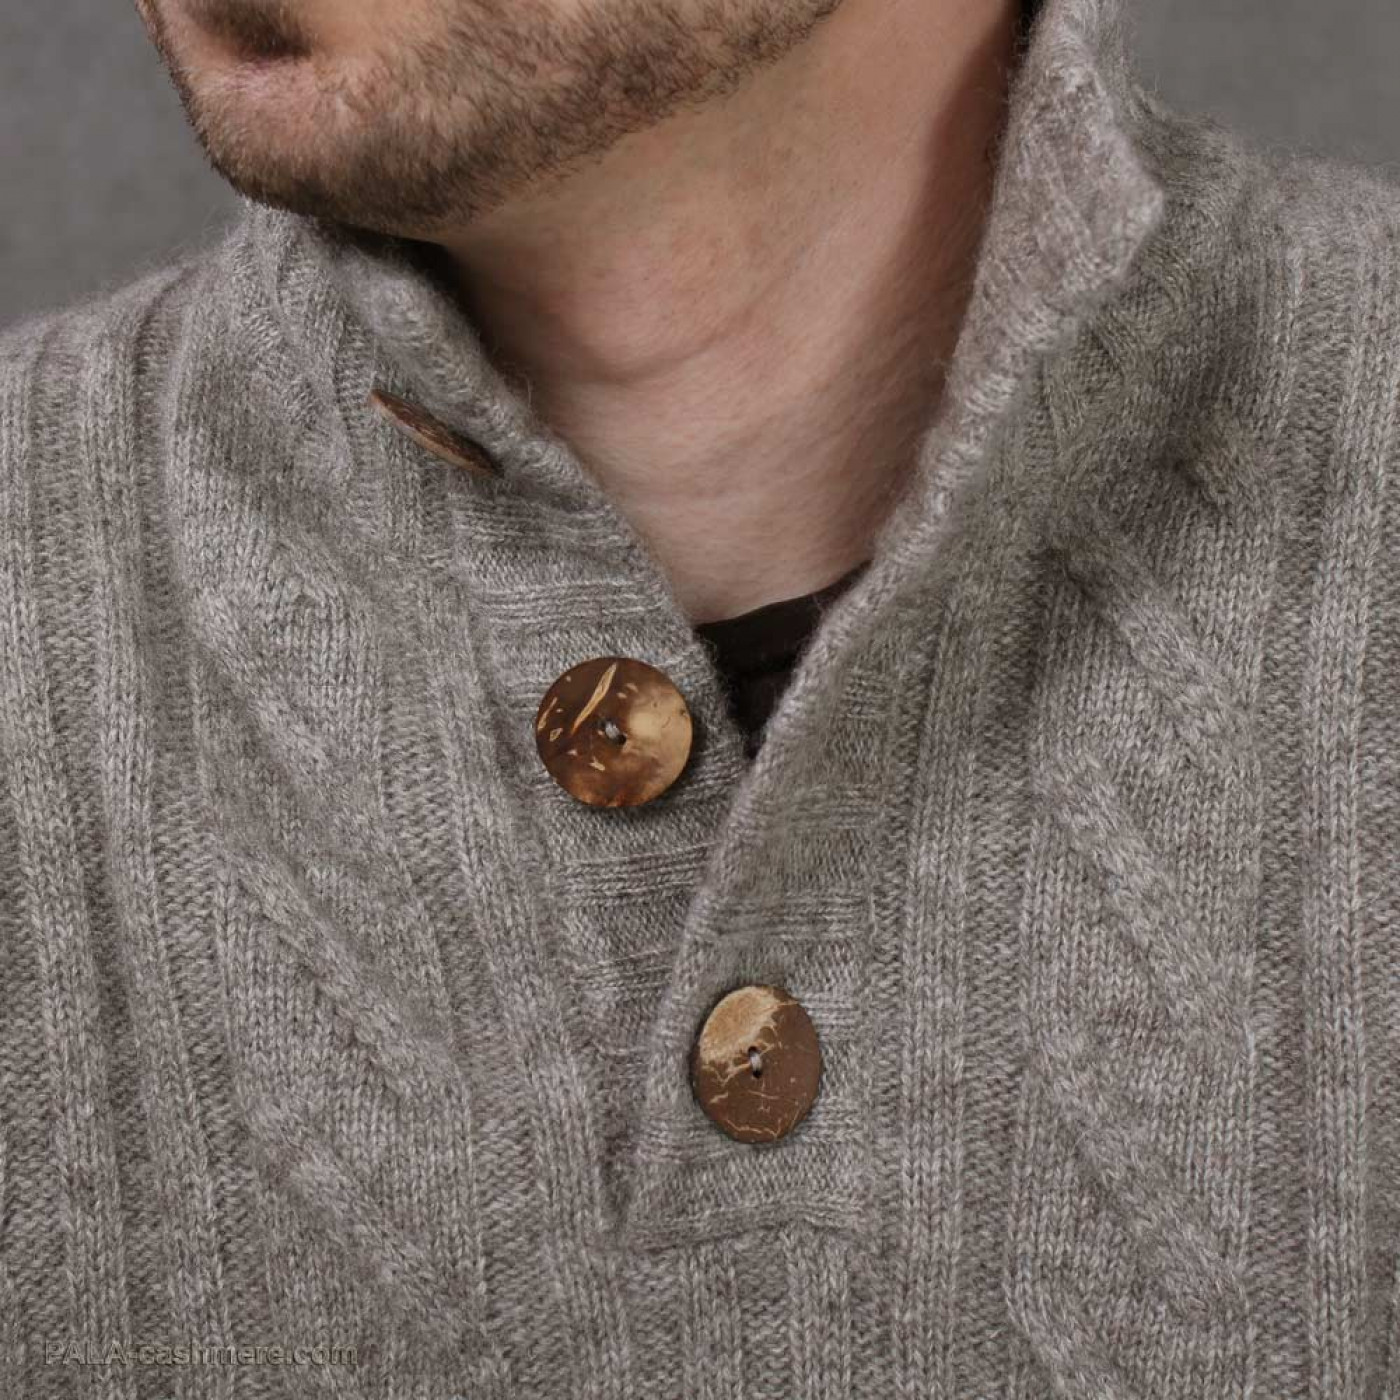 Cardigan for men from yak wool on buttons